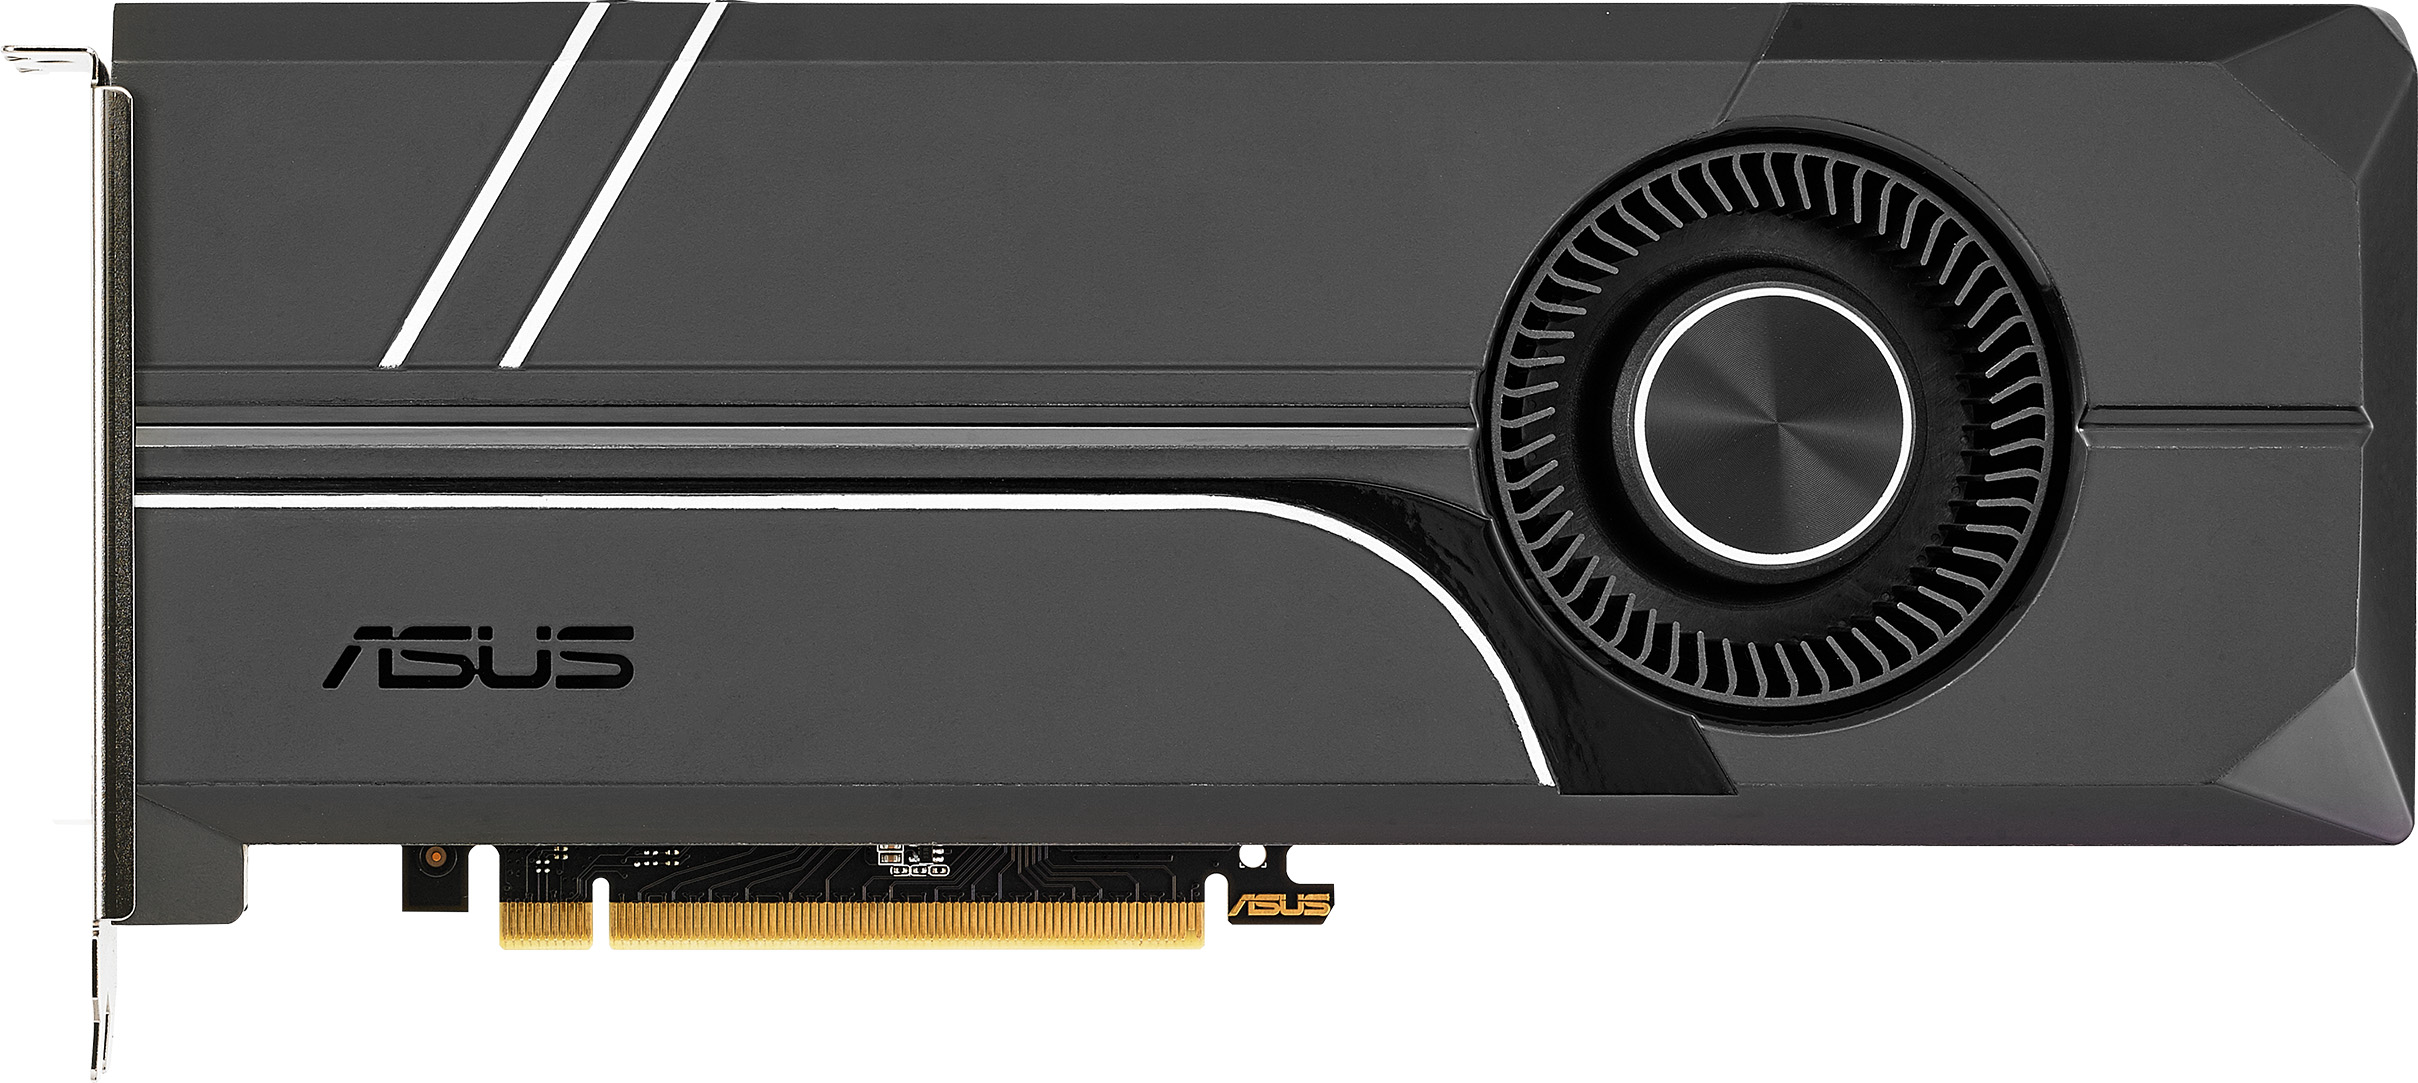 Asus GeForce GTX 1080 TI 11GB Turbo Edition VR Ready Gaming Graphics Card Deal